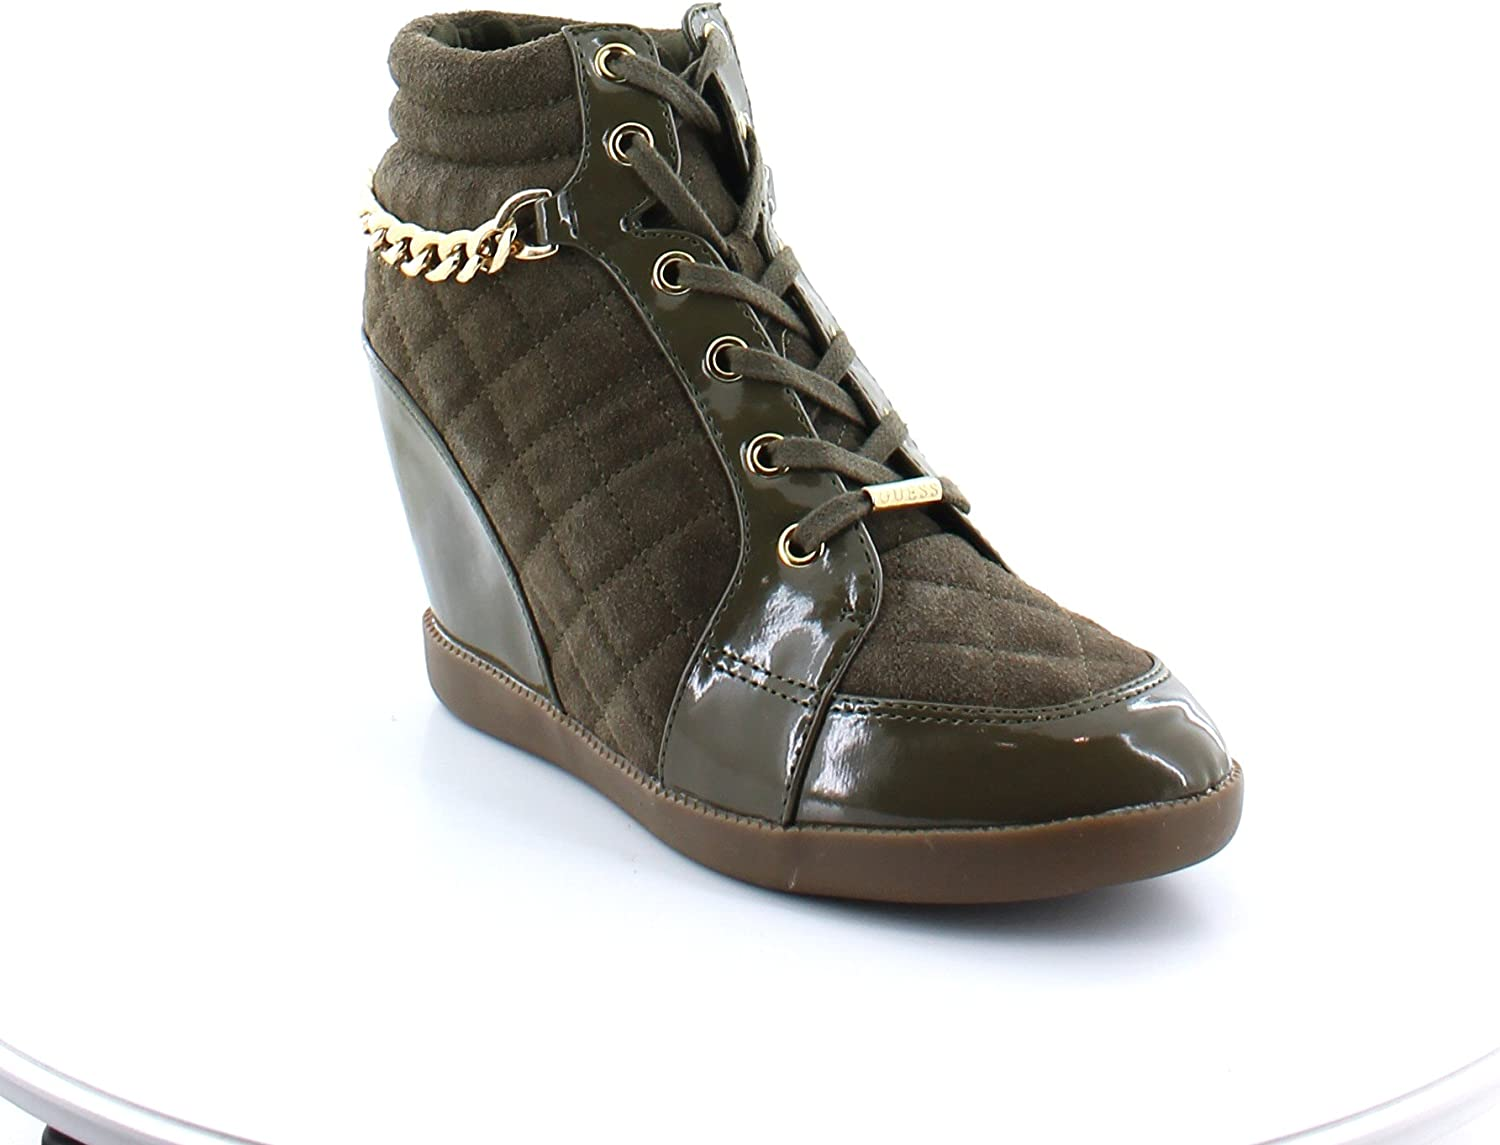 GUESS New Hevin Wedge Boots Women's Size 8 Green